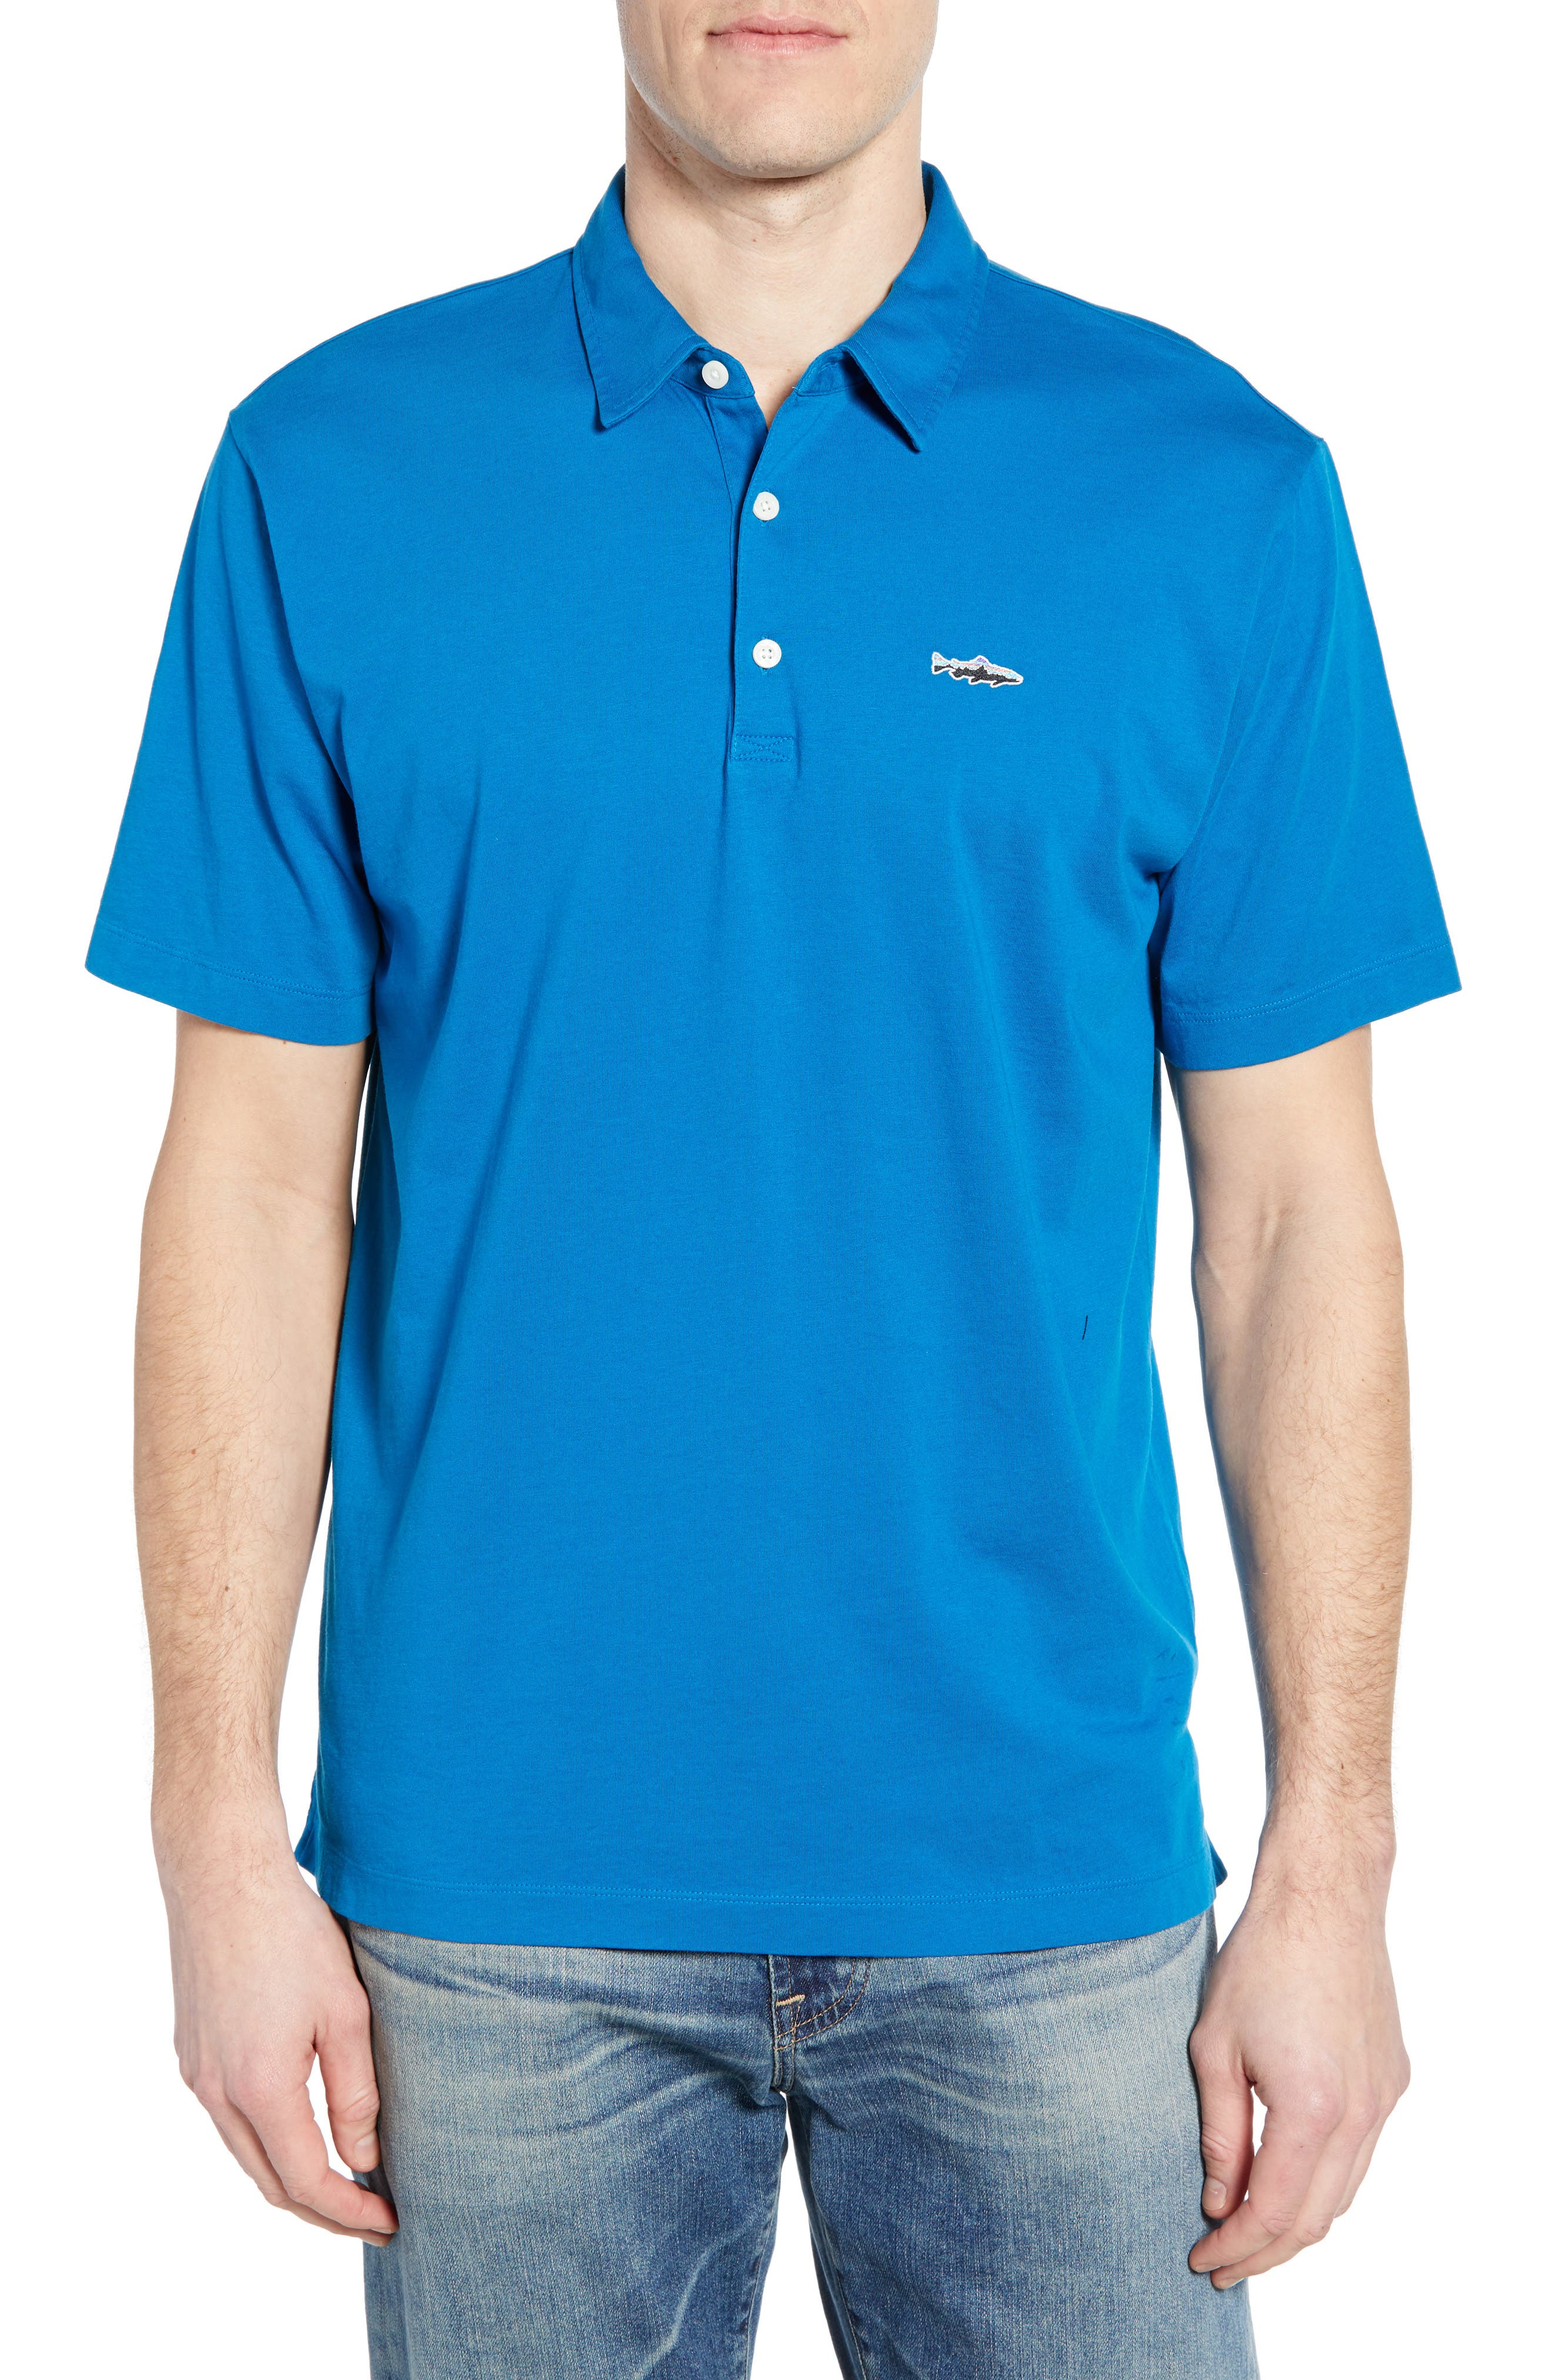 PATAGONIA 'Trout Fitz Roy' Organic Cotton Polo, Main, color, BALKAN BLUE